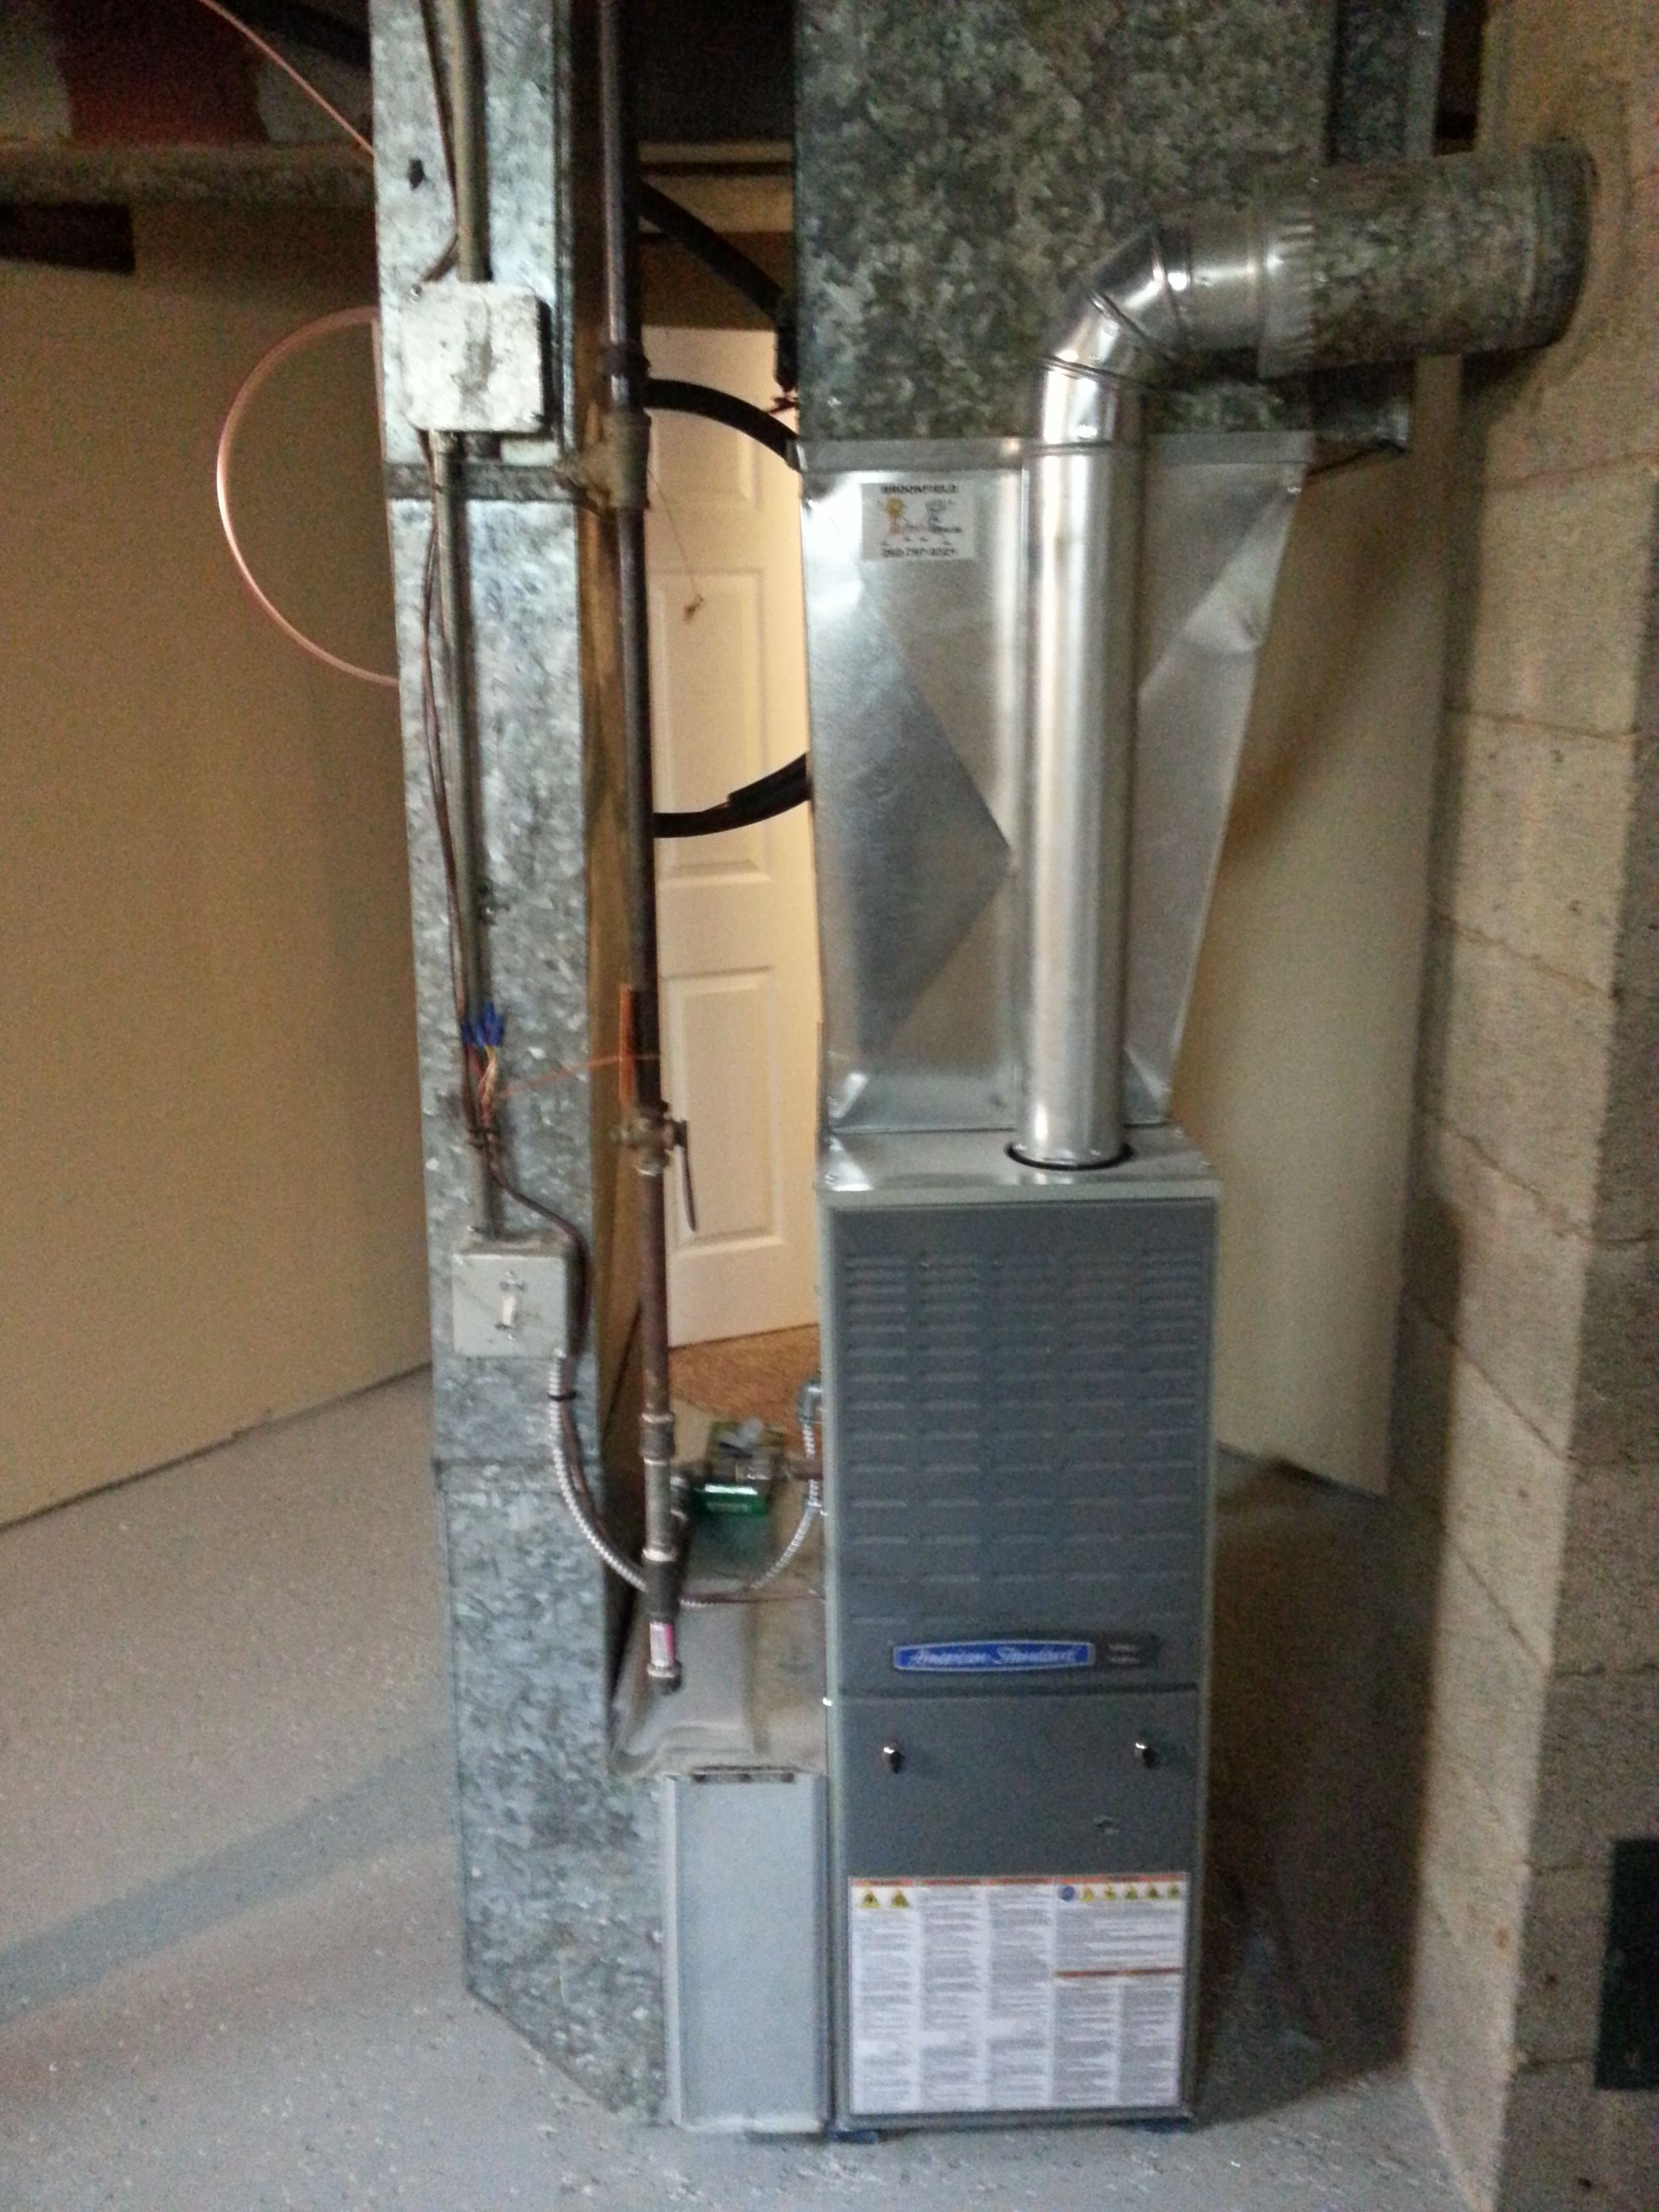 American Standard 80 Efficient Gas Furnace Heating